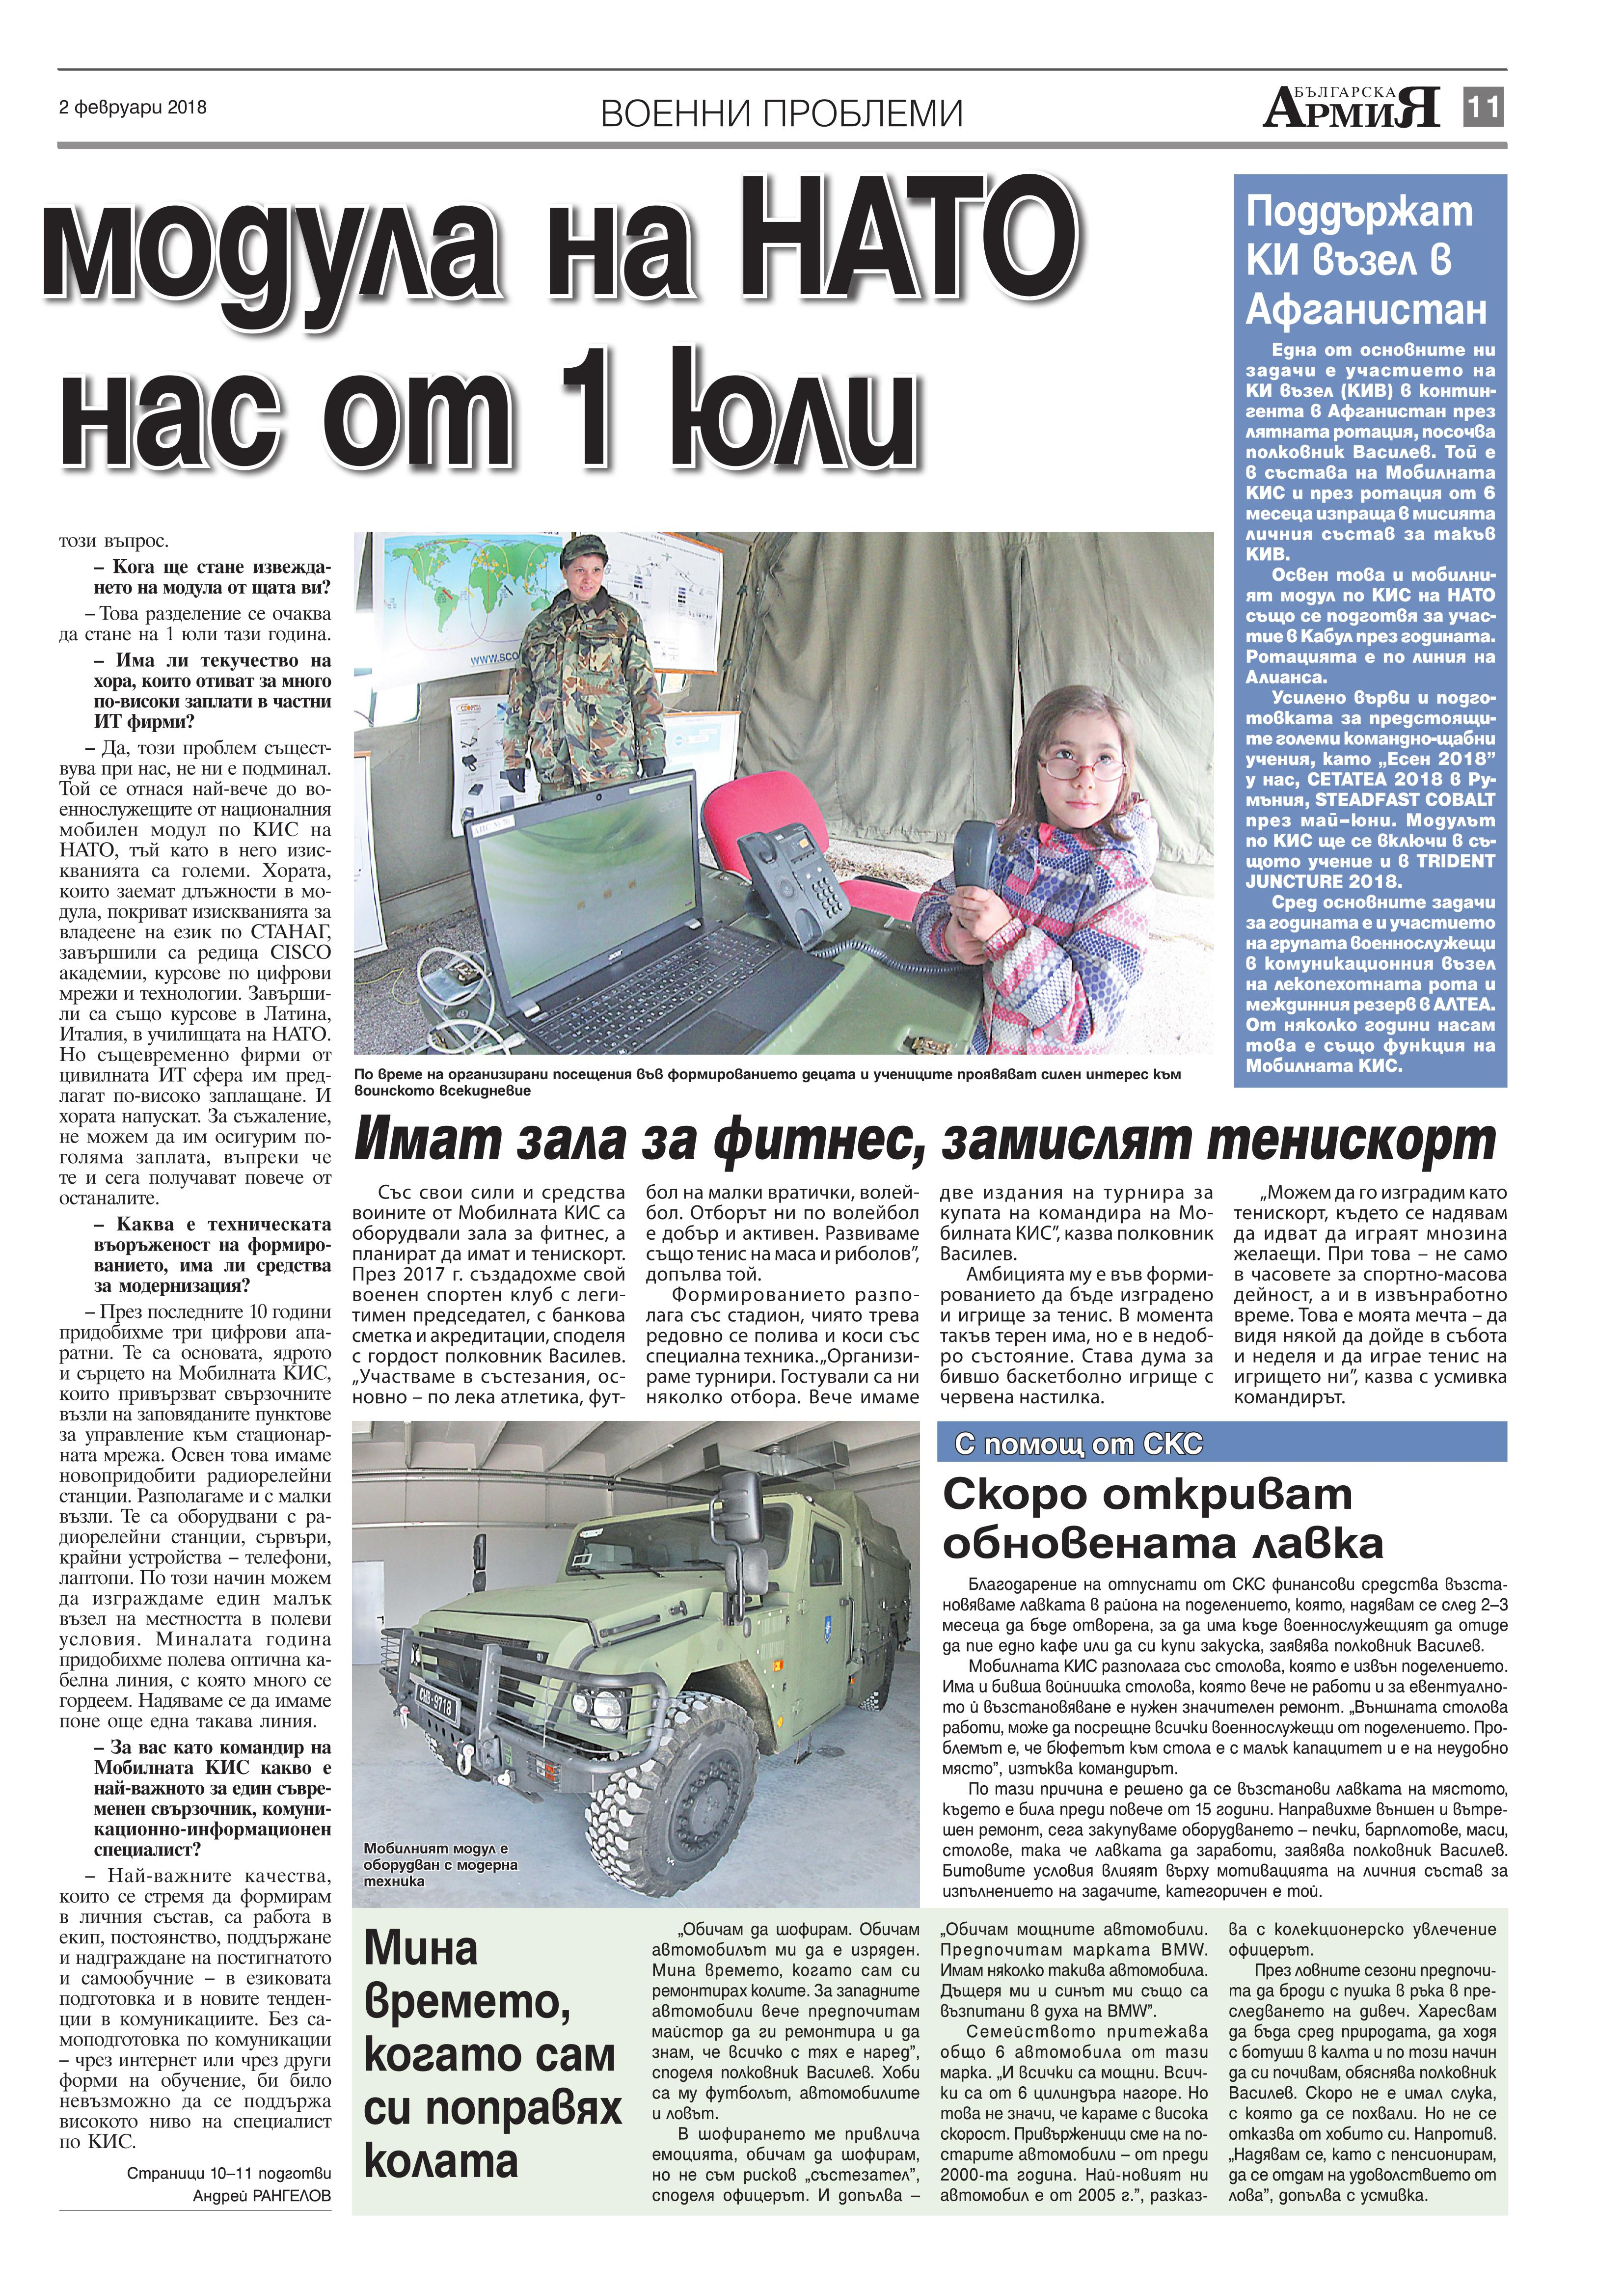 http://armymedia.bg/wp-content/uploads/2015/06/11.page1_-38.jpg